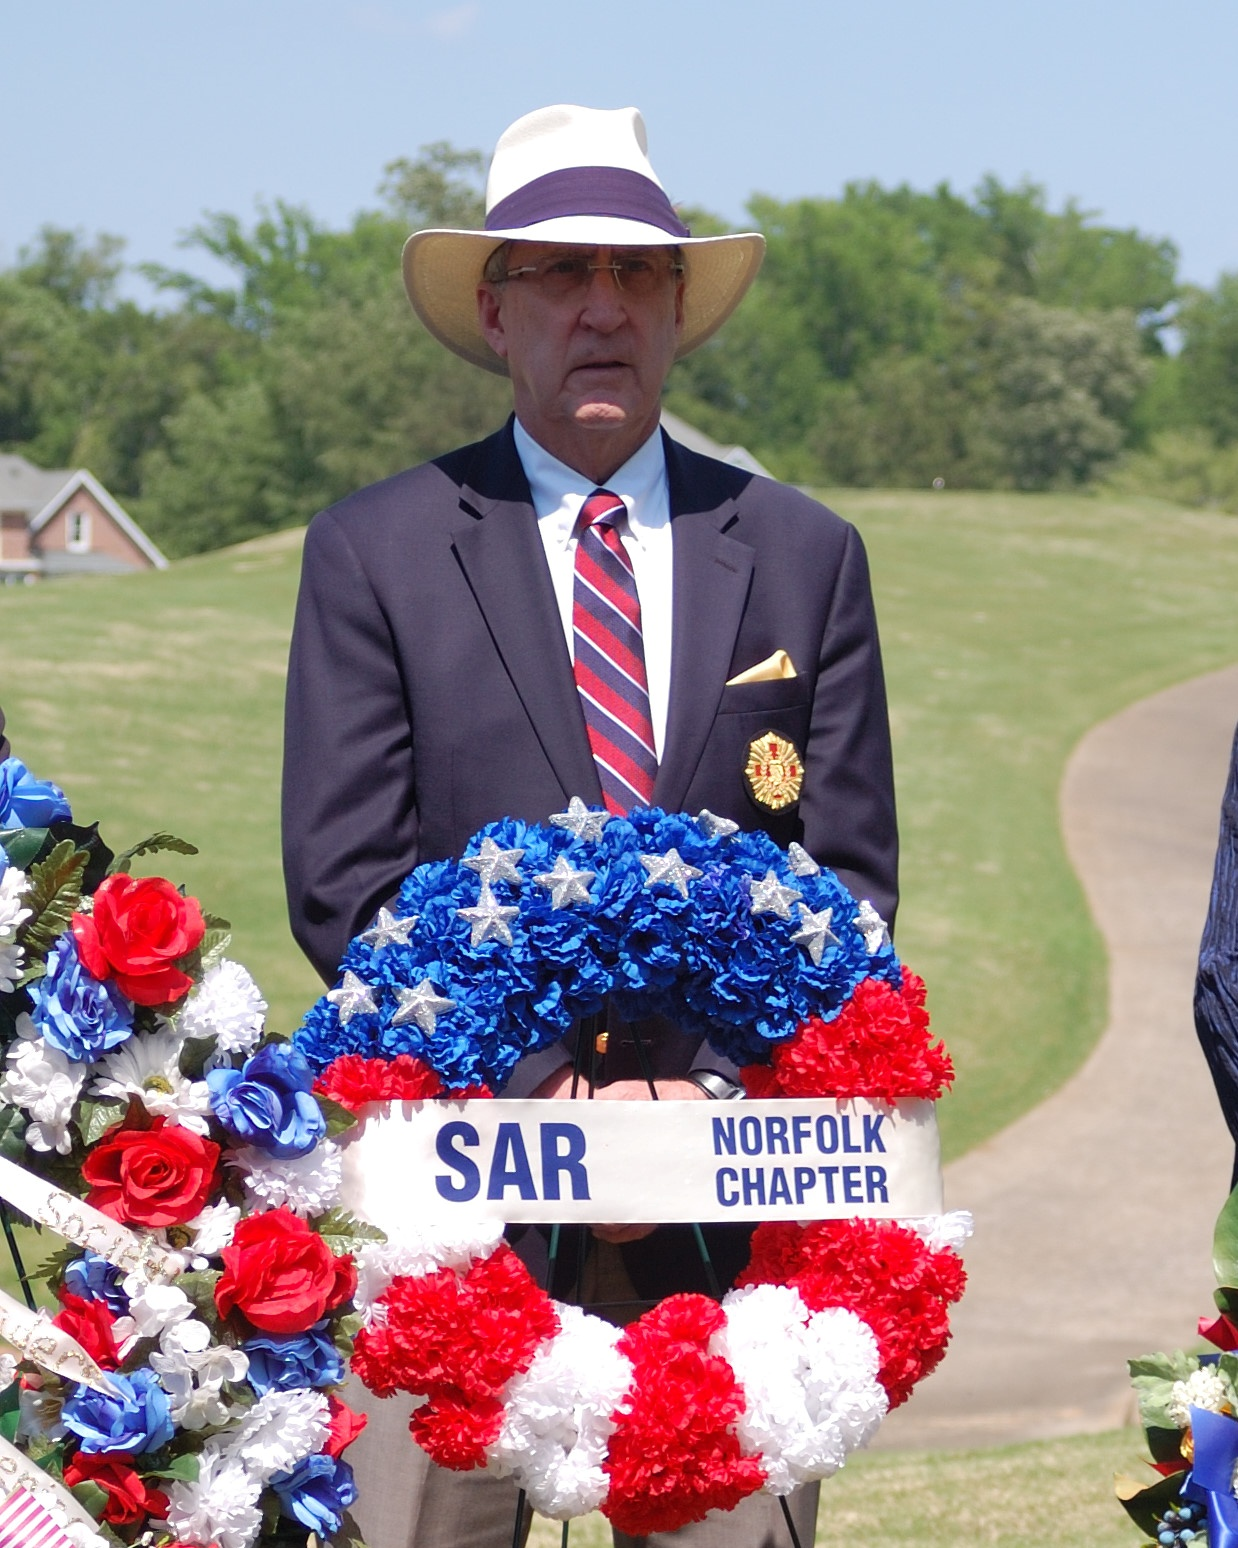 Norfolk Chapter SAR President, who is also a member of the Order of Founders and Patriots of America, presents the Norfolk Chapter SAR wreath at the re-interment ceremony